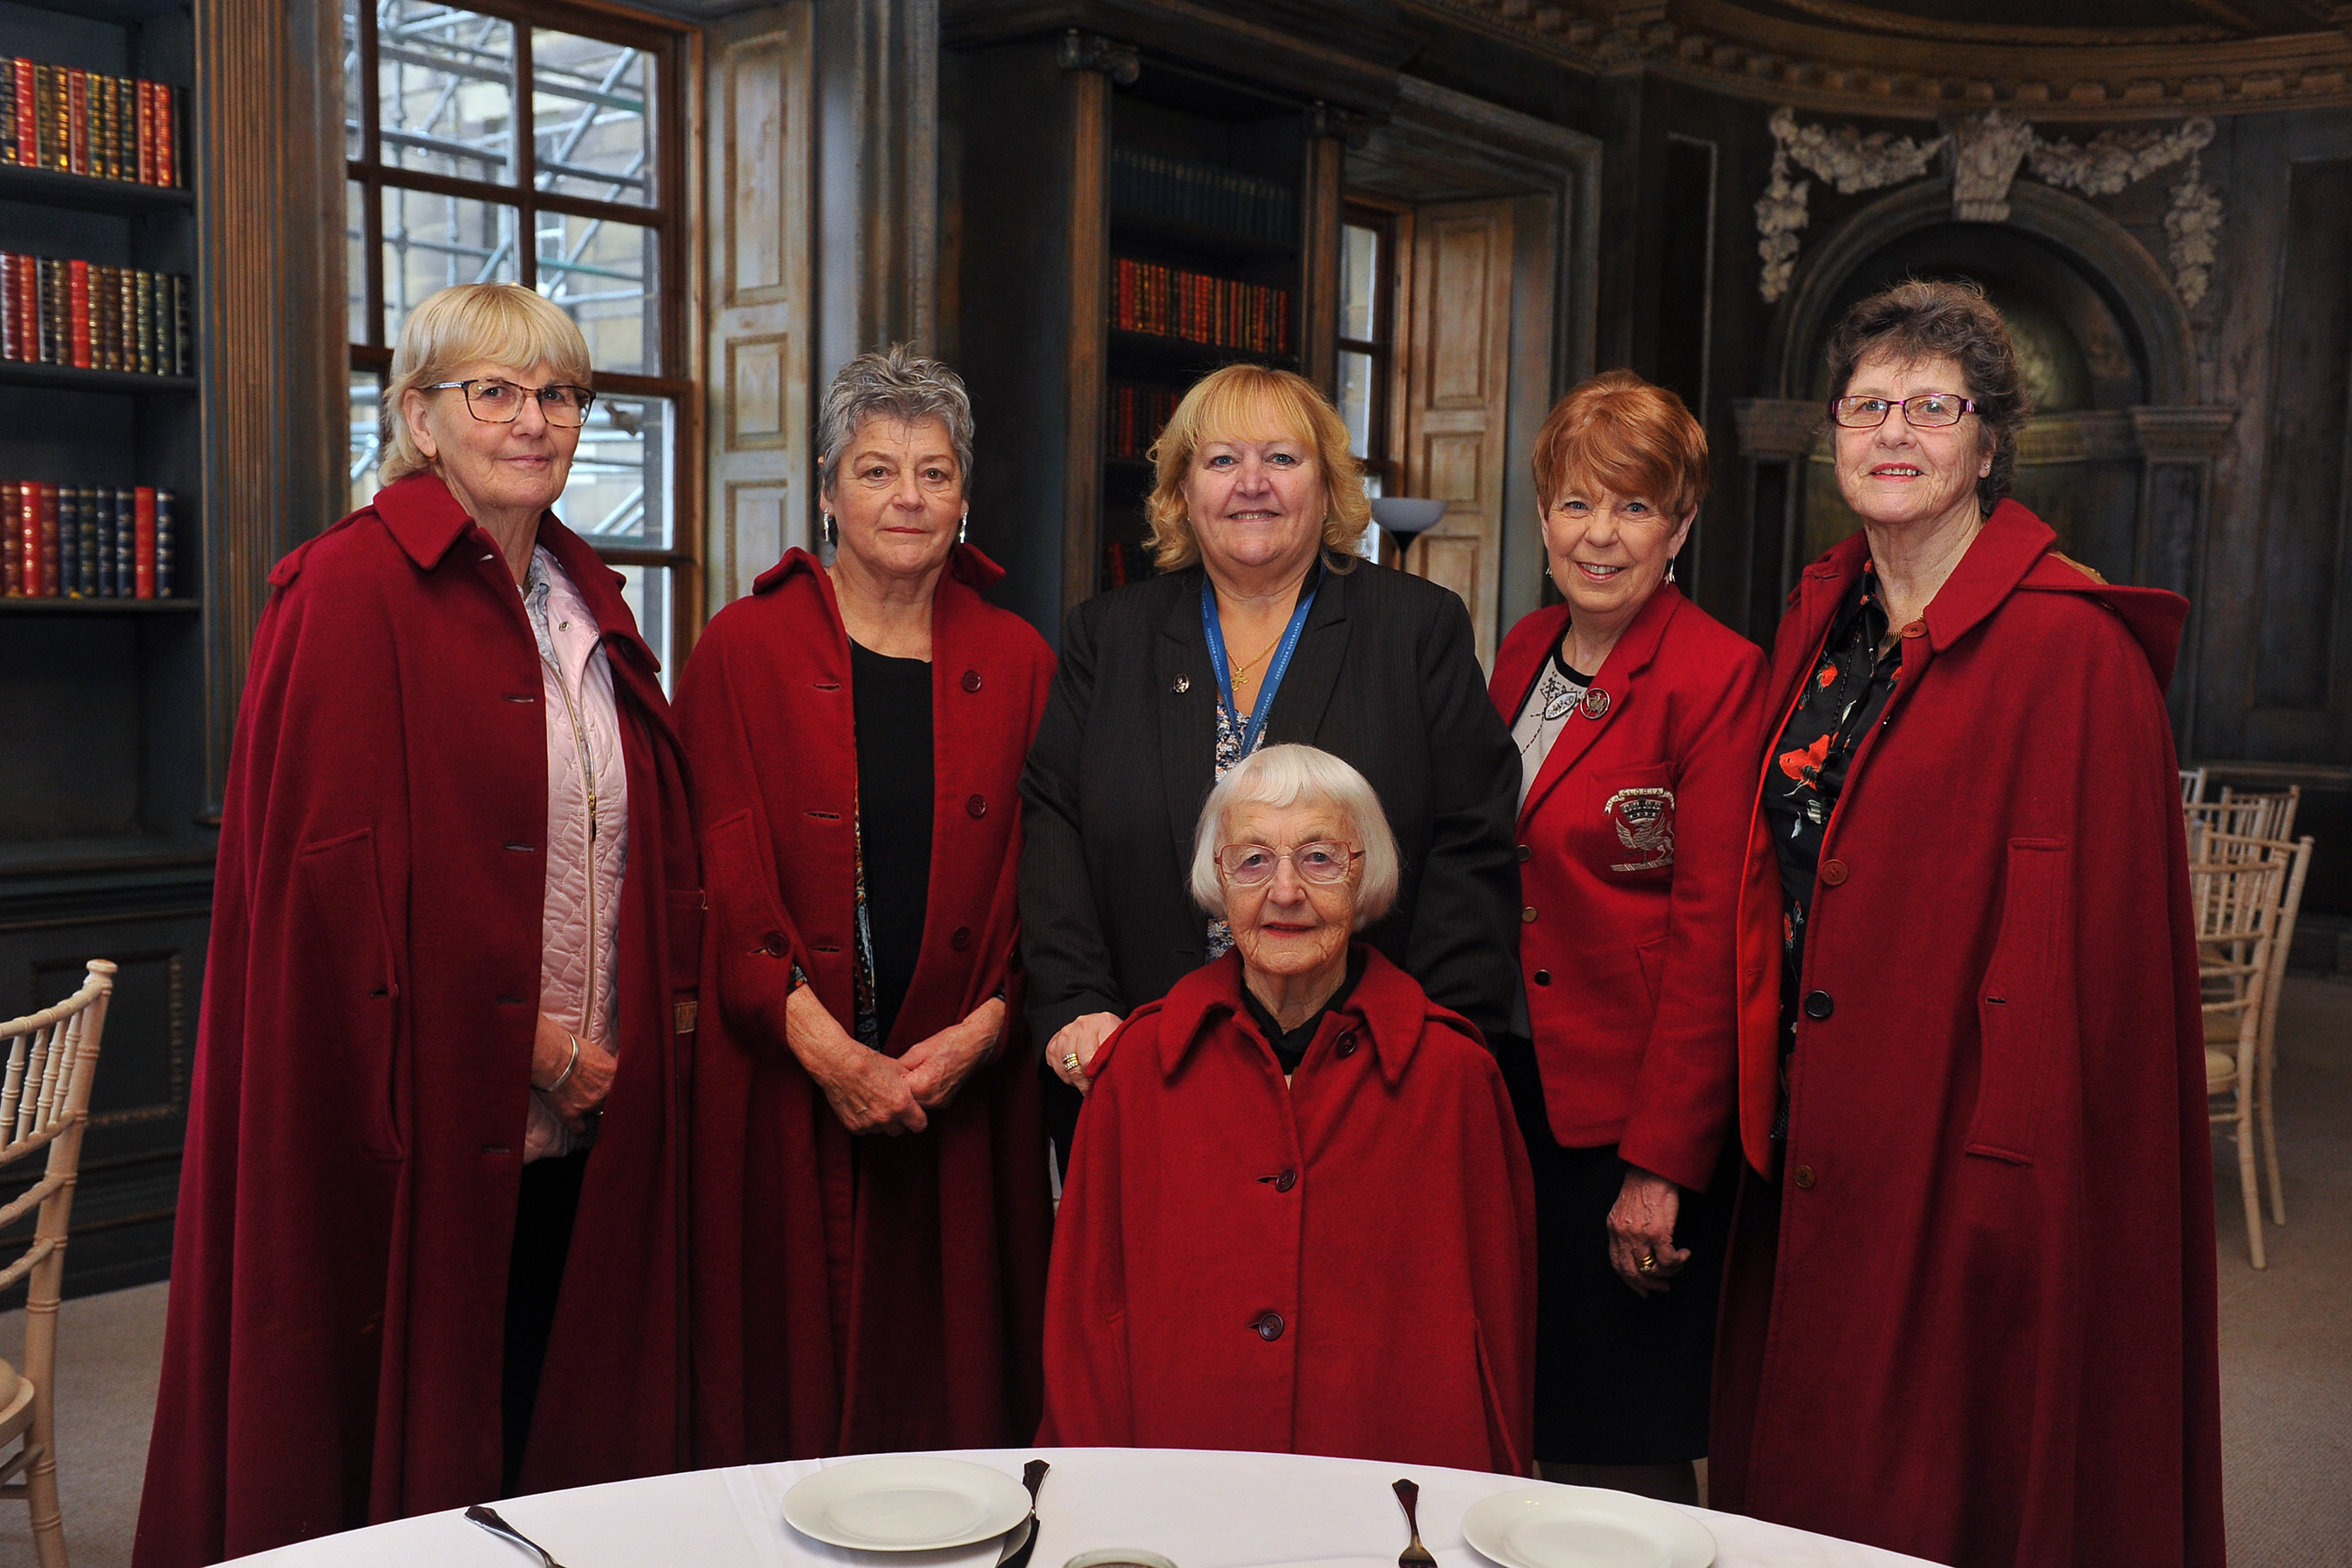 Former students at the Lady Mabel College of Physical Education, recently attended a lunch to celebrate the 70th anniversary of the college's opening. The lunch took place in the Lower Gallery at Wentworth Woodhouse, which used to be their dining room. Seen at the event (left to right) are: back row; Sue Gravil, 1967-1970; Gwynneth Elliot, 1967-1970; Dame Julie Kenny CBE DL, chair of trustees Wentworth Woodhouse Preservation Trust; Jo Owen1966-1969 and Sheila Sherwood, Olympic Long Jumper, 1964-1969; seated; Sybil Wilbraham, first student through the door on her 19th birthday, 1949-1952.